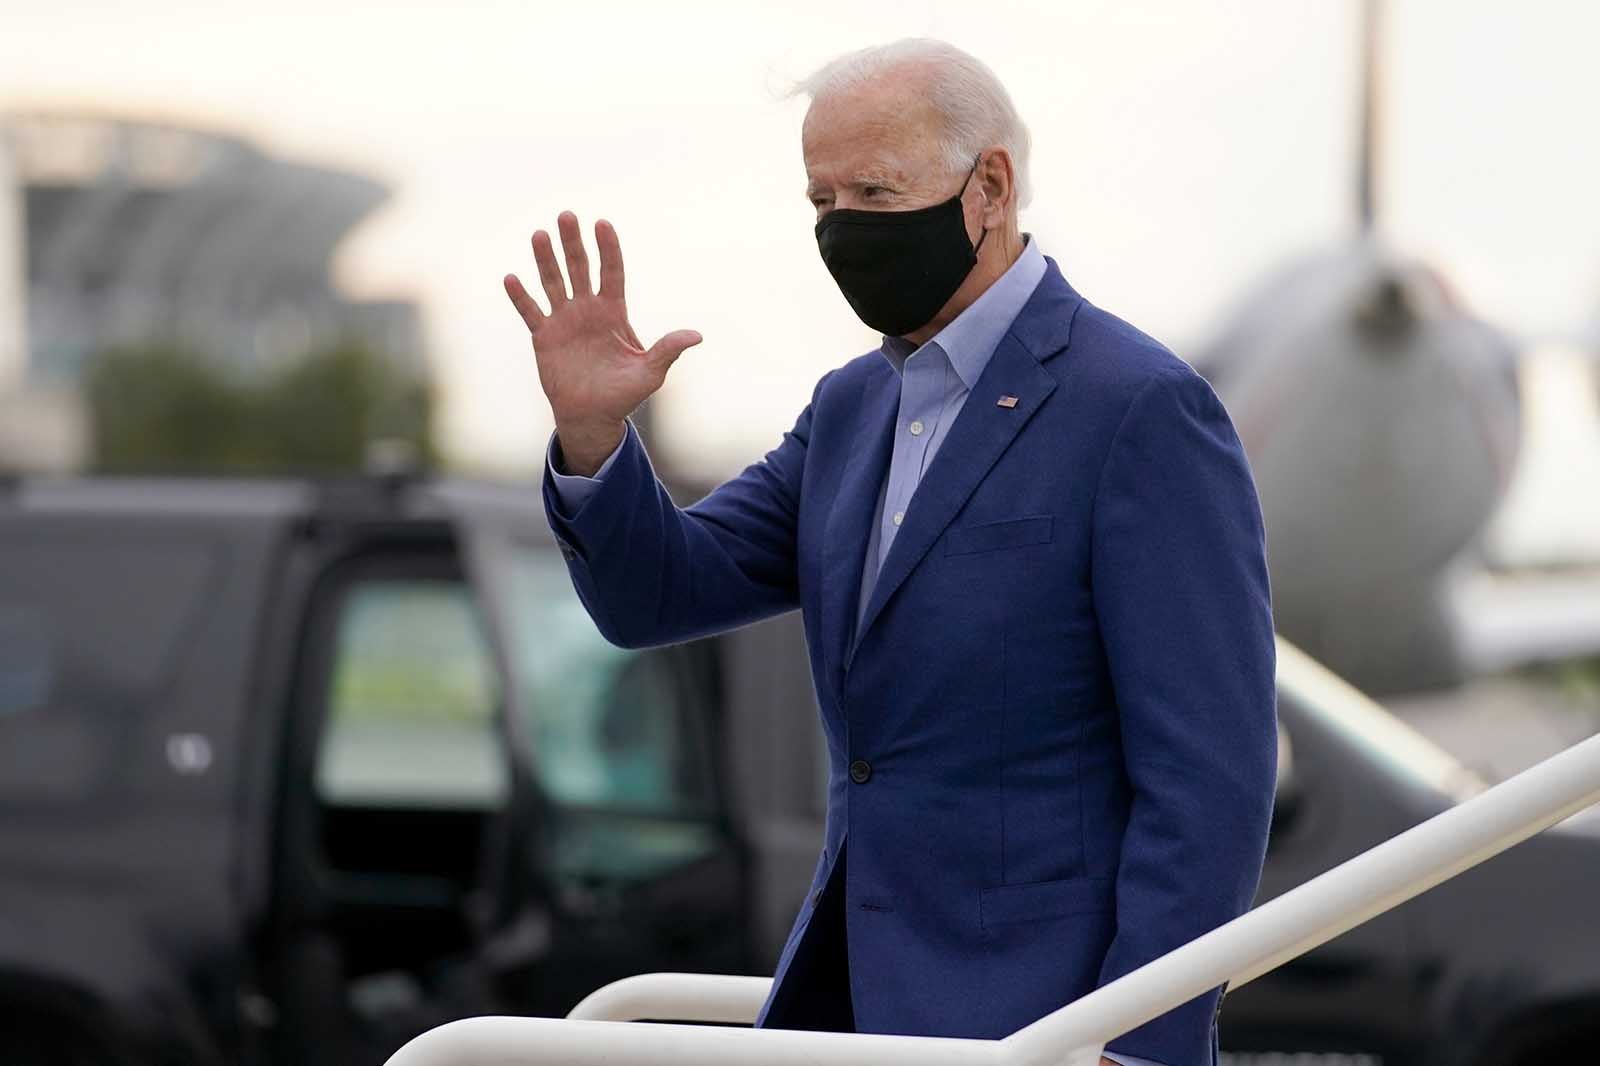 Democratic presidential nominee Joe Biden arrives at Cleveland Airport in Cleveland, on Tuesday, September 29.